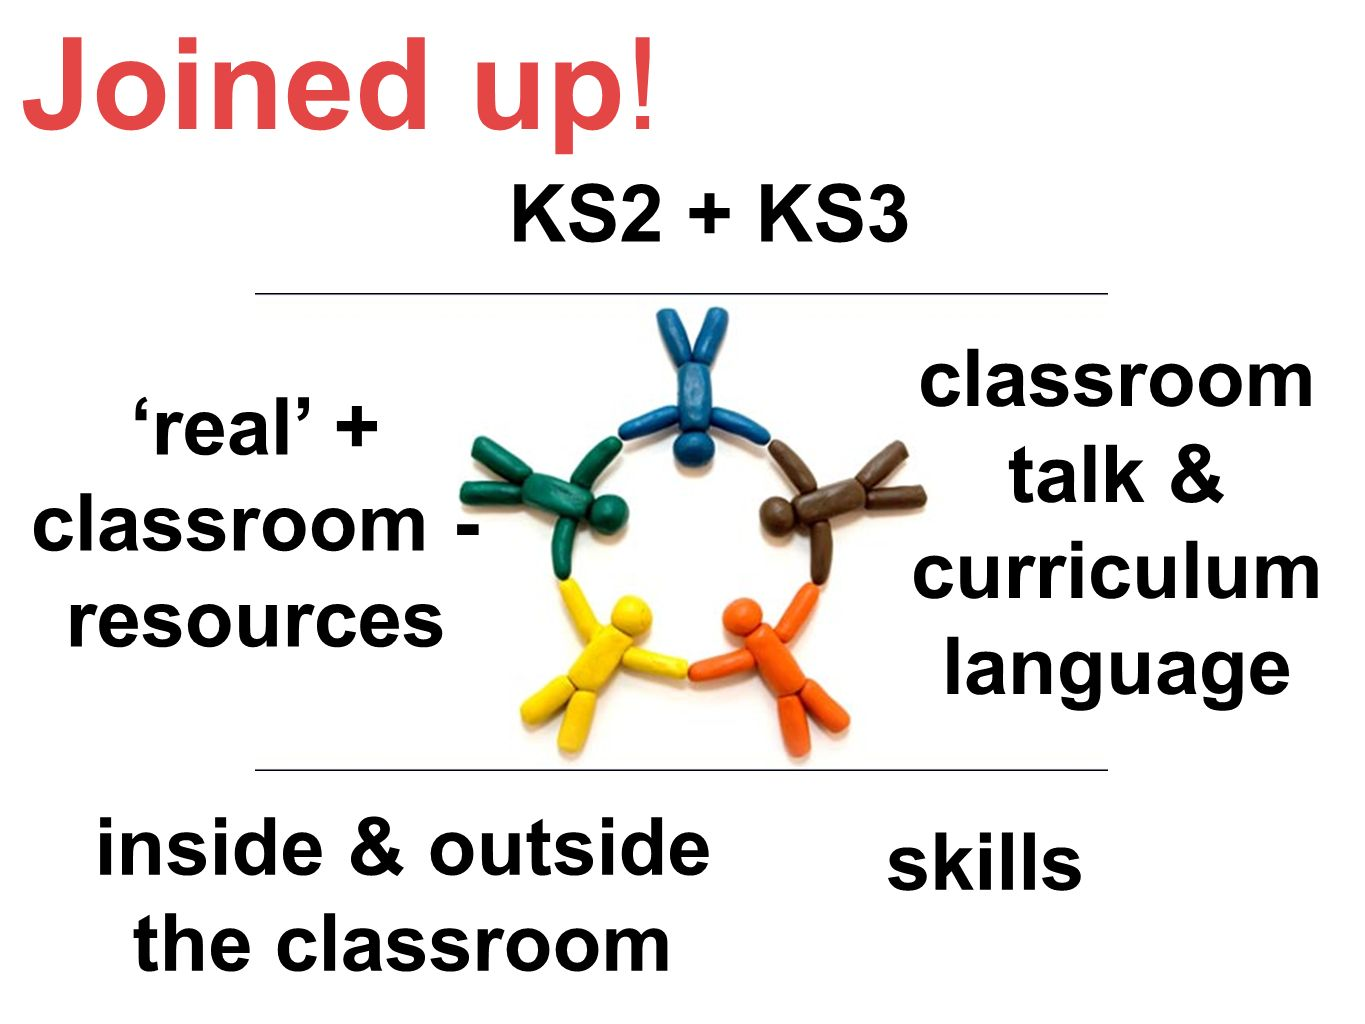 KS2 + KS3 classroom talk & curriculum language skills inside & outside the classroom real + classroom - resources Joined up!